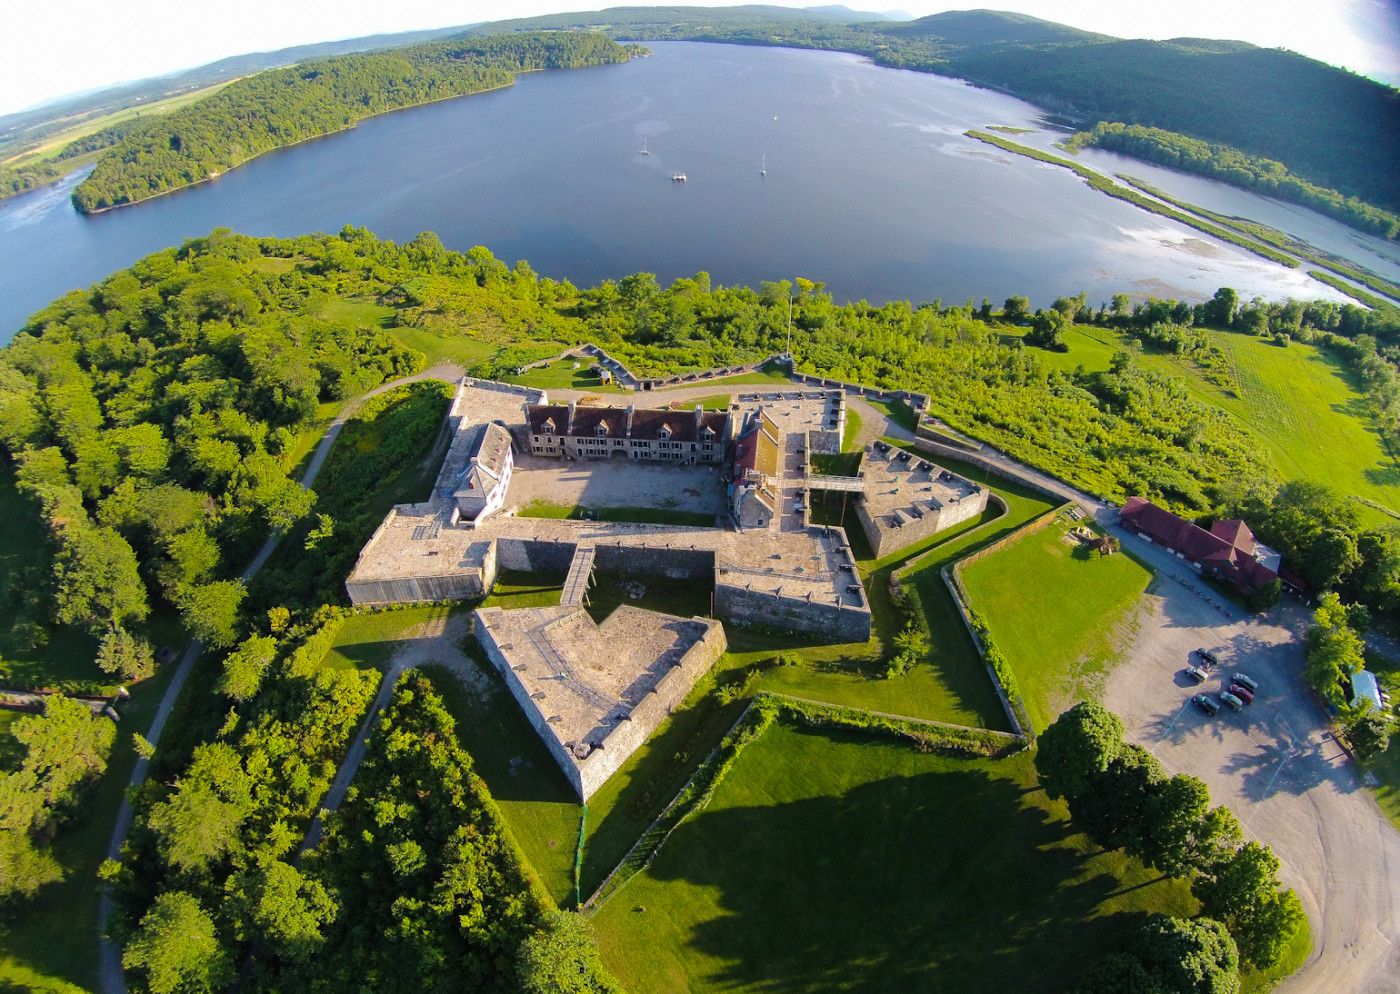 Celebrate Independence Day at Fort Ticonderoga